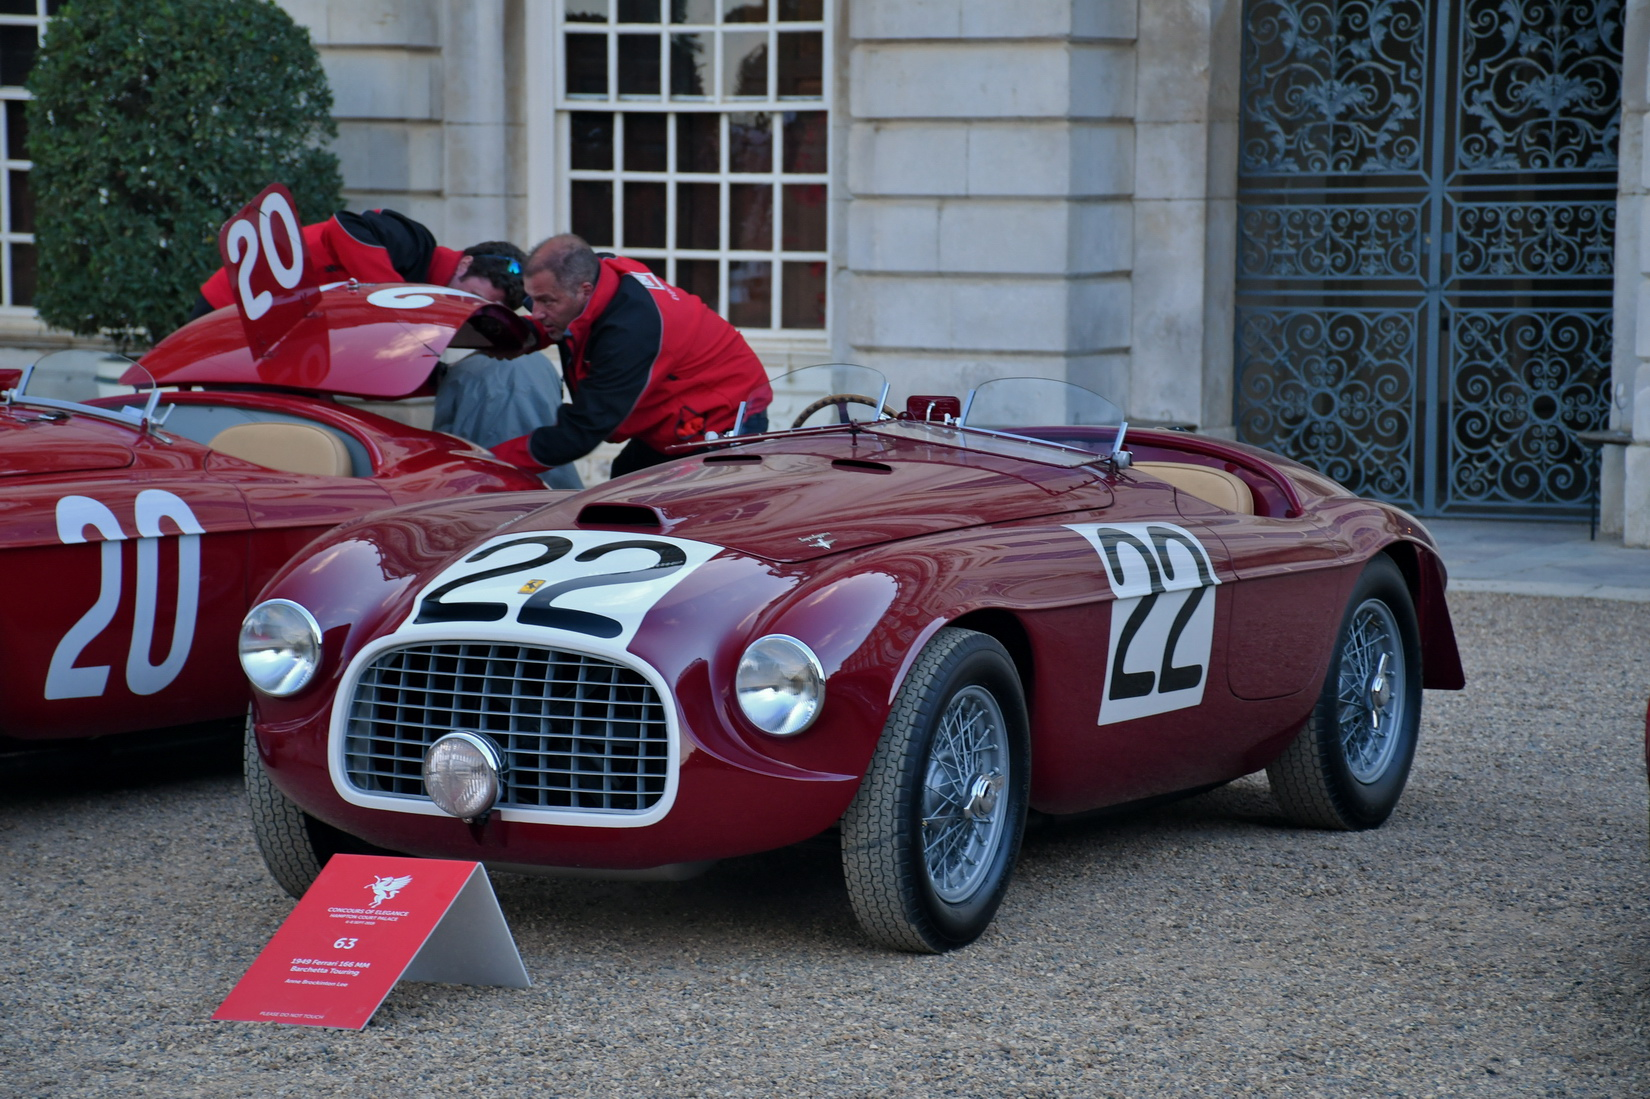 Red Ferrari 166MM from 1949 chassis number 0008 with the racing number 22 on the sides